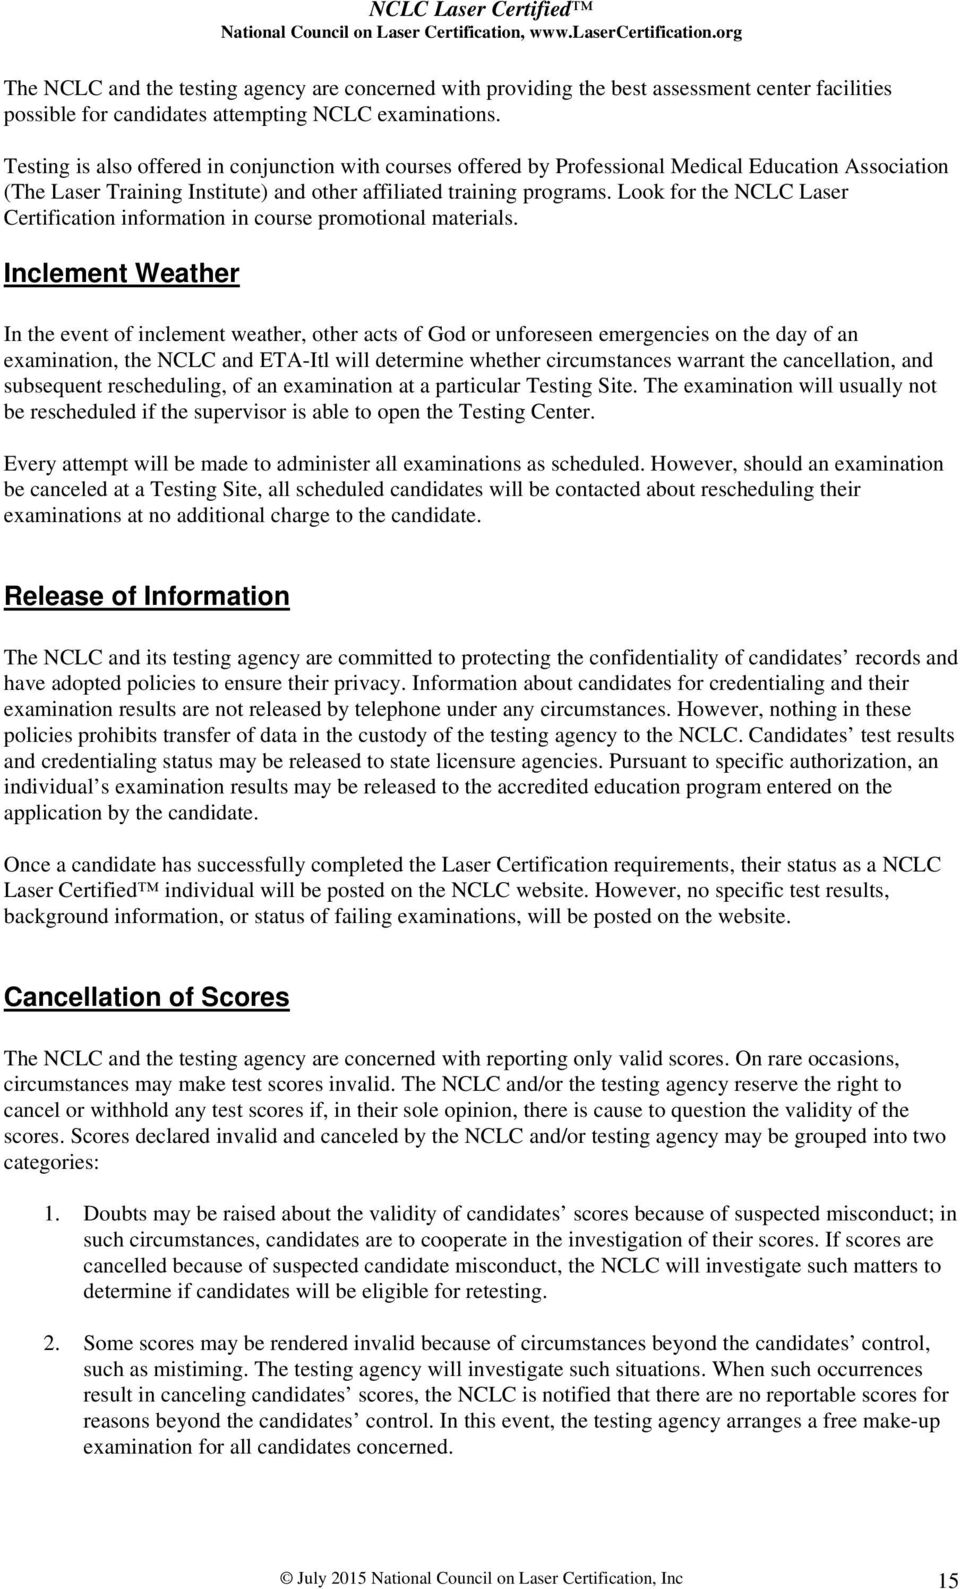 Nclc Laser Certified National Council On Laser Certification N C L